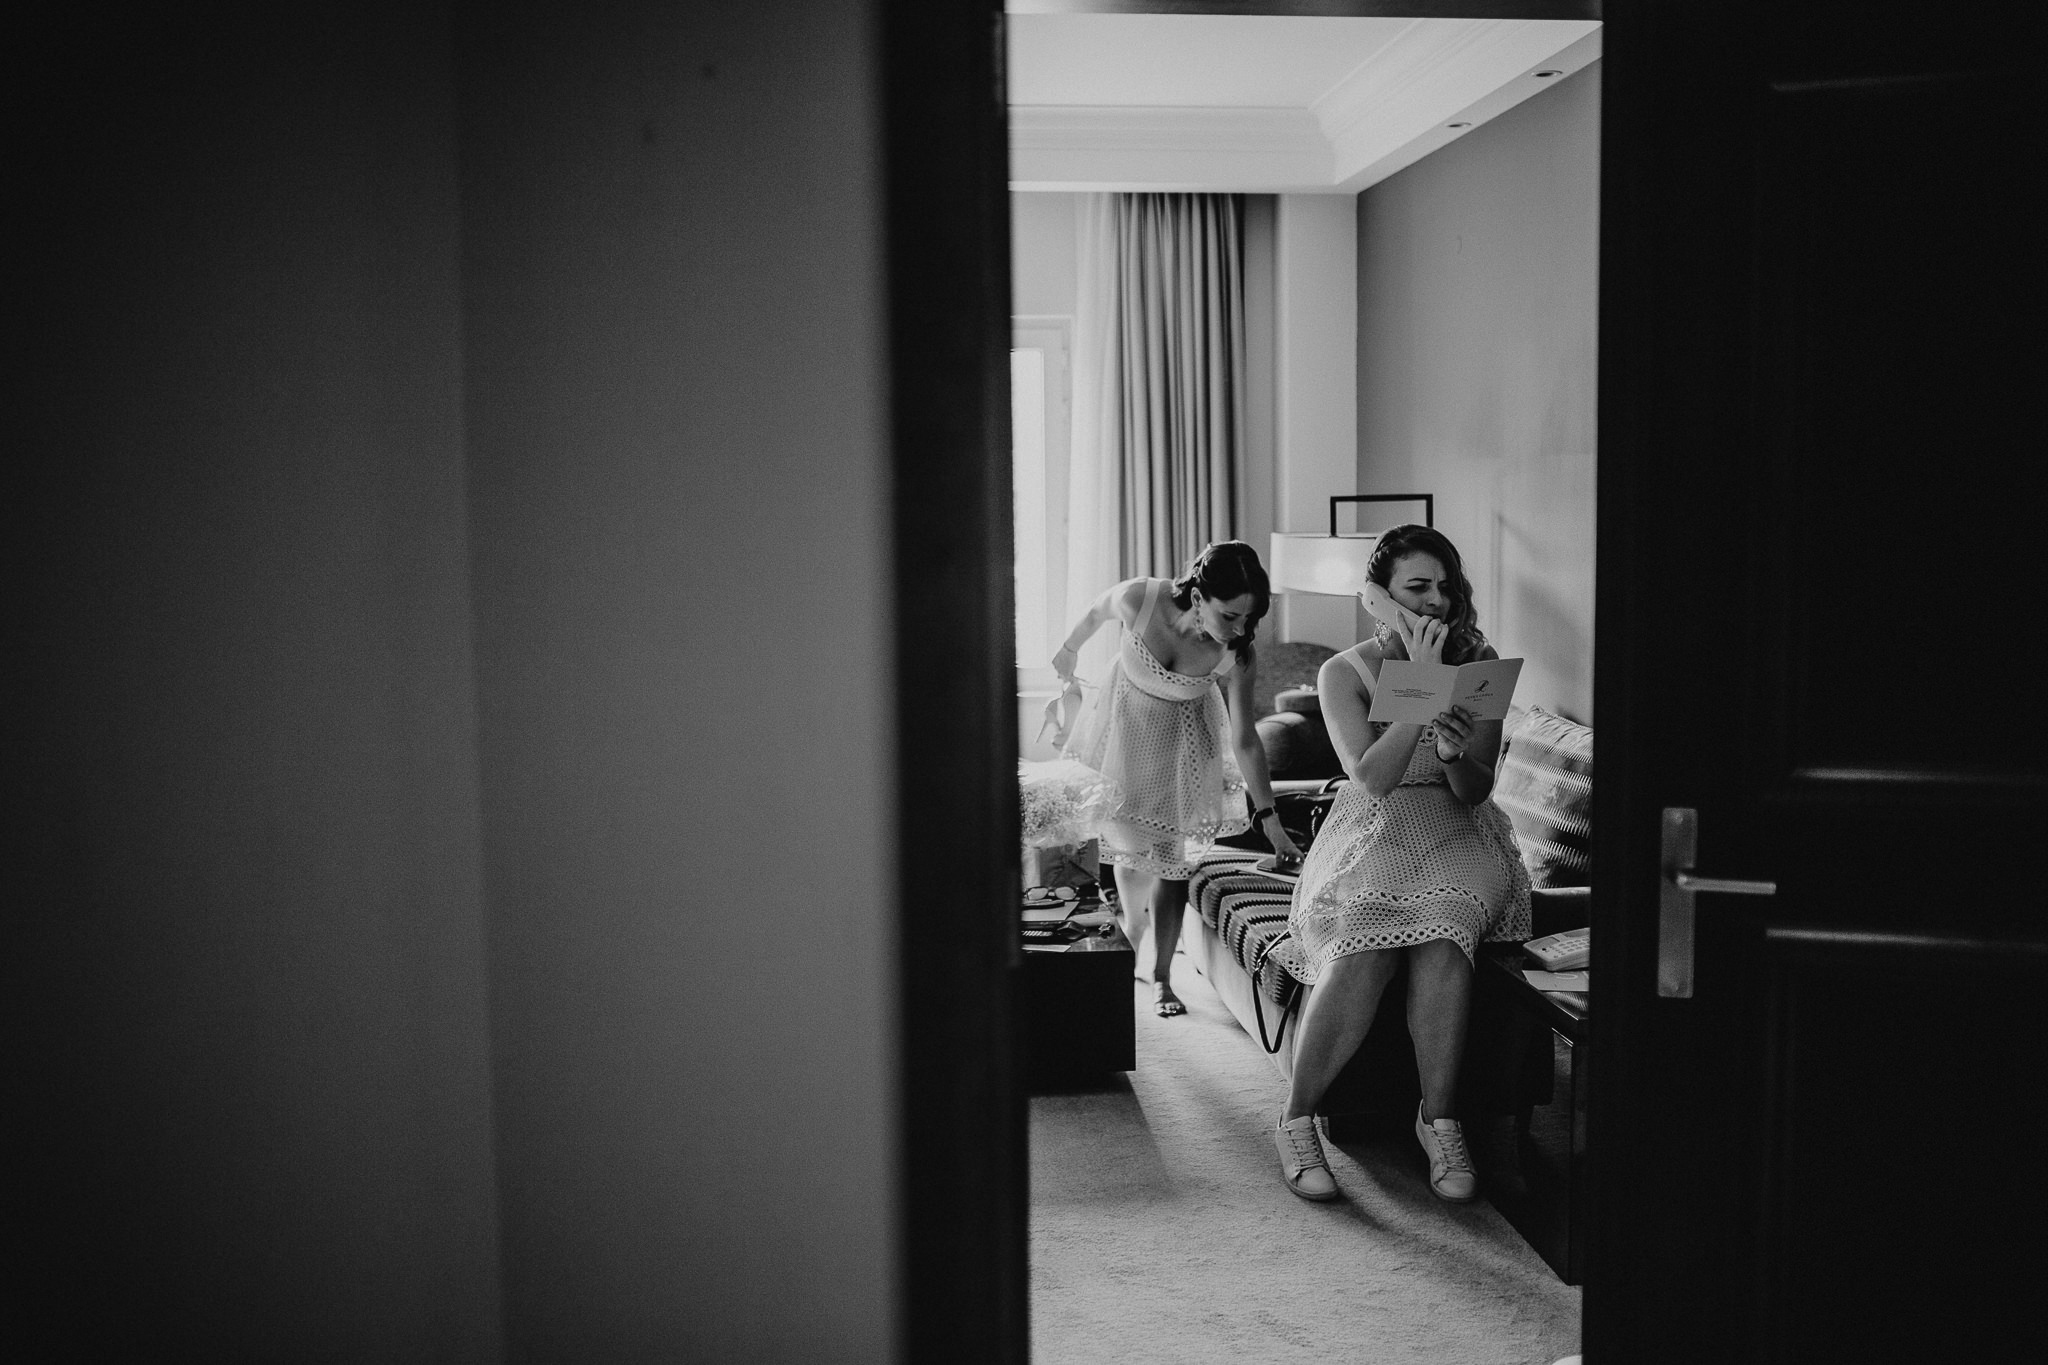 romina_thomas_destination_wedding_photography_fotografia_de_casamento_lisbon_sintra_penha_longa_resort-14